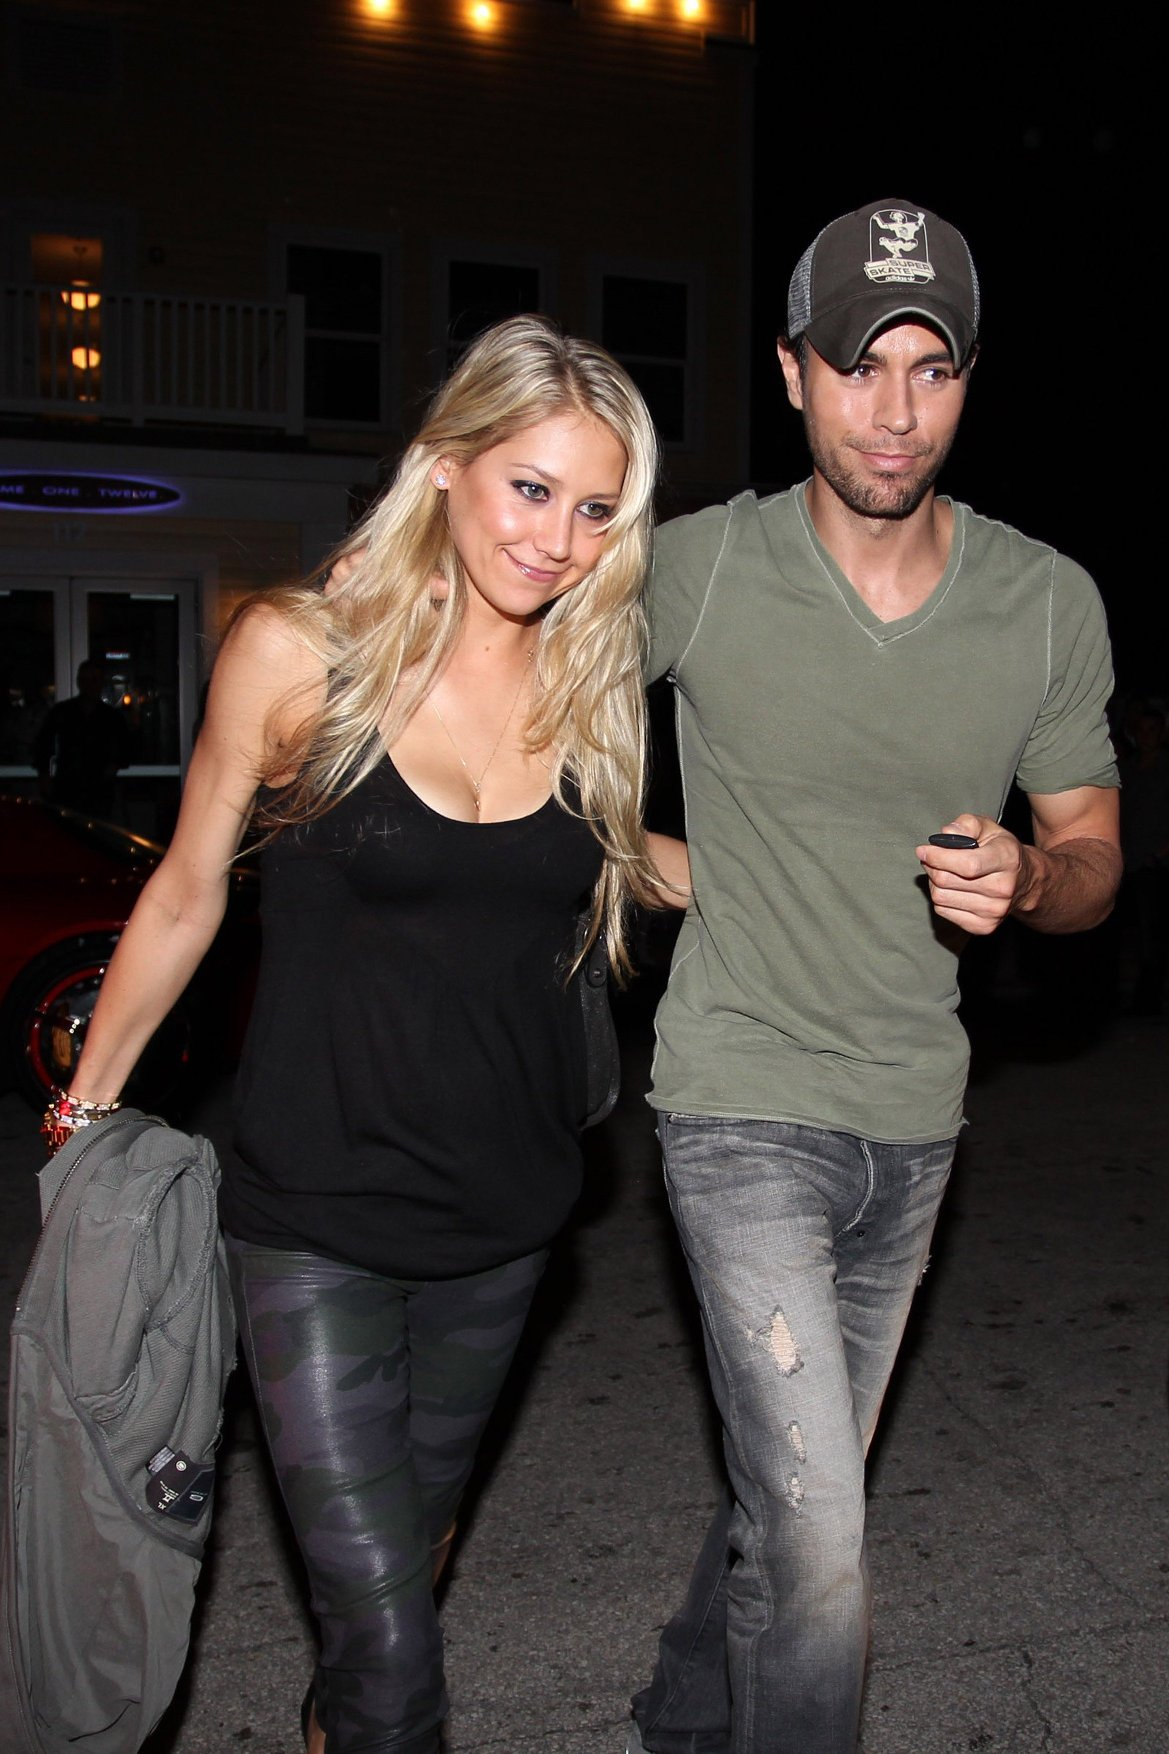 47463, SOUTH BEACH, FLORIDA - Saturday November 13 2010. Anna Kournikova and Enrique Iglesias enjoy a Saturday date night at South Beach's Prime One Twelve Italian restaurant. Enrique recently said he never plays tennis against his glamorous girlfirend - because she always wins!, Image: 87436162, License: Rights-managed, Restrictions: , Model Release: no, Credit line: Profimedia, Pacific coast news